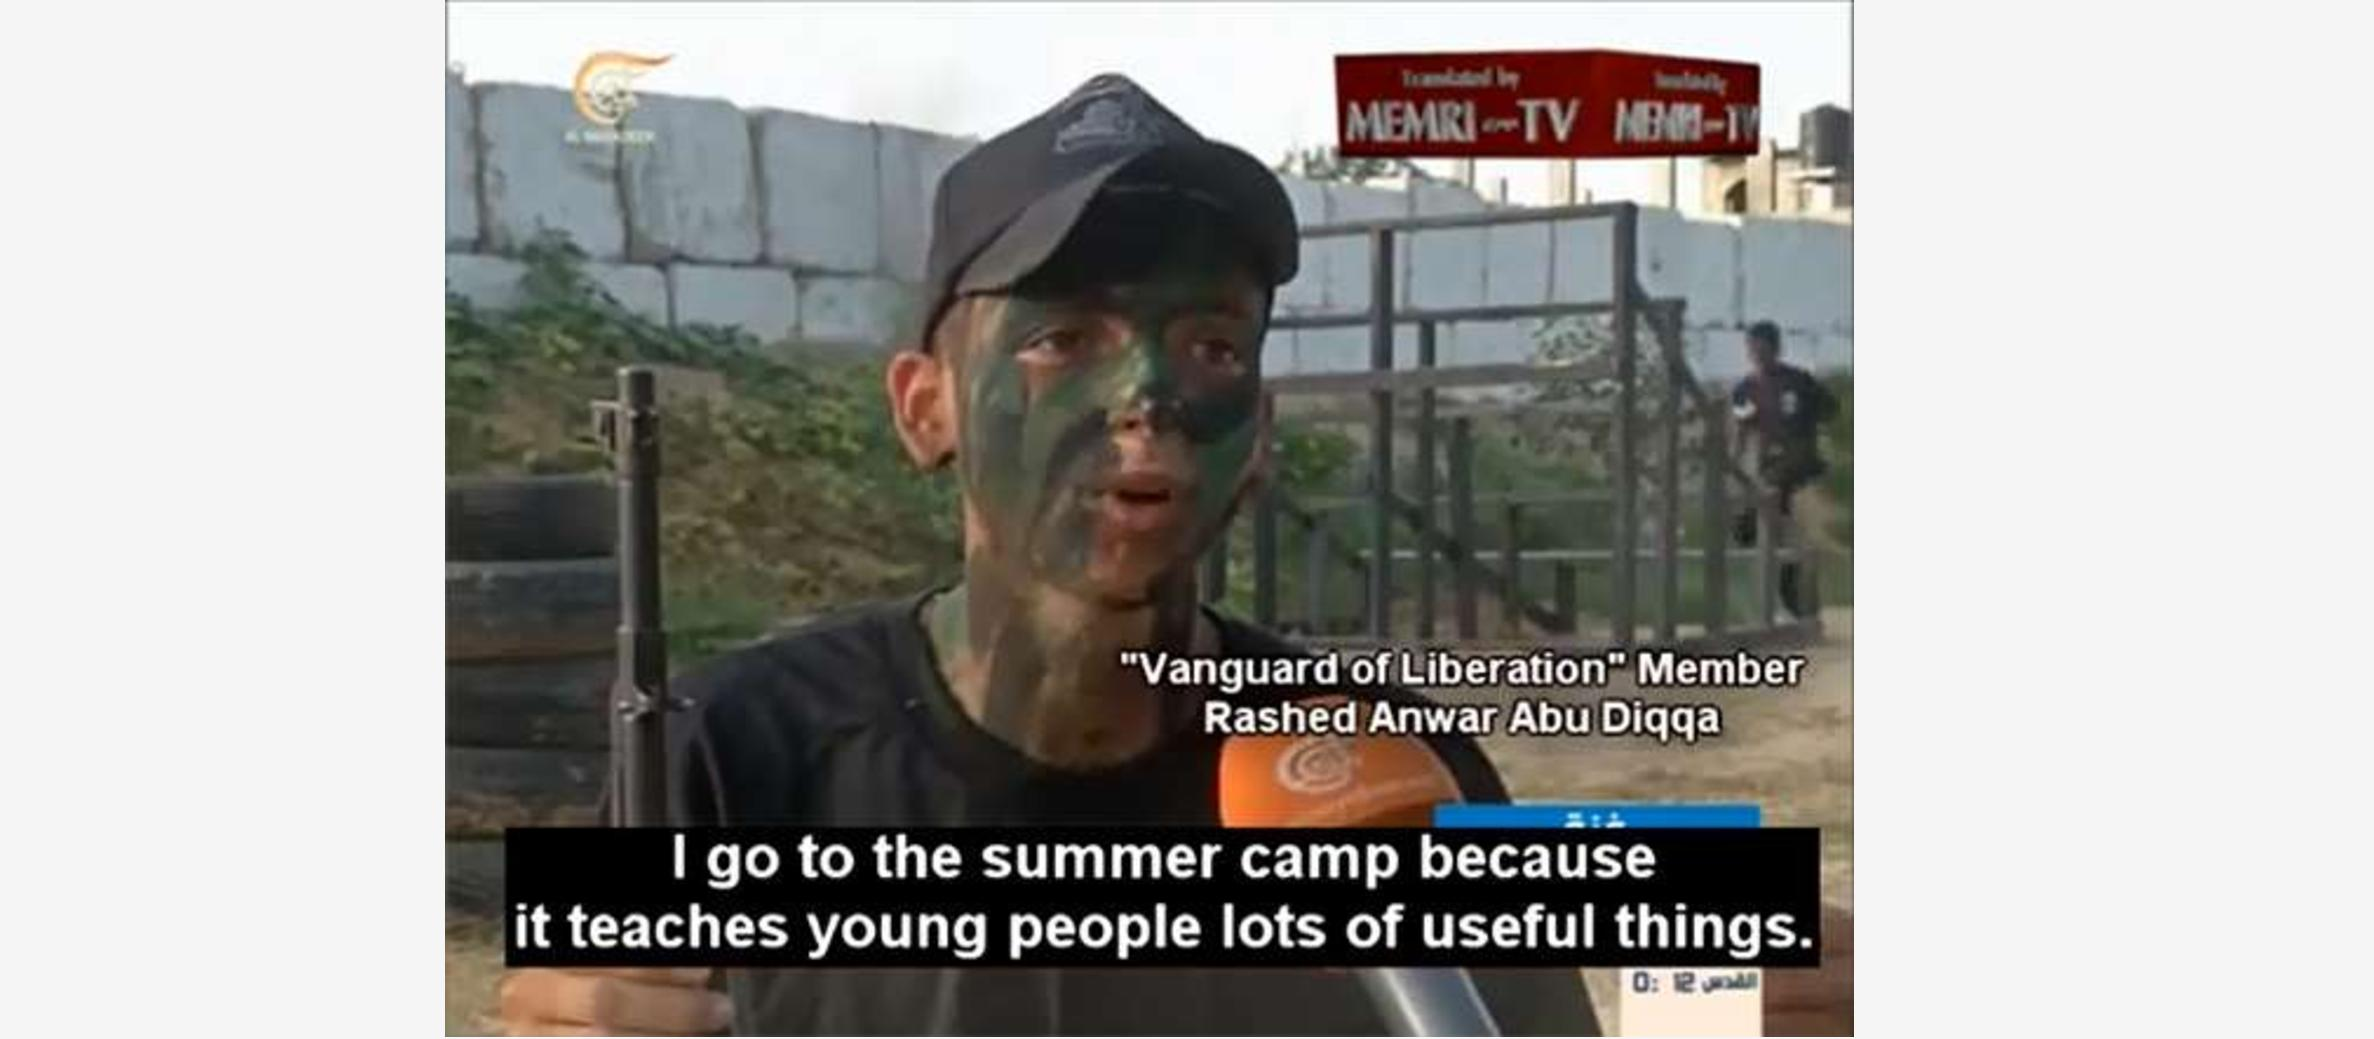 Hamas training camp attracts 25,000 youth as young as 15